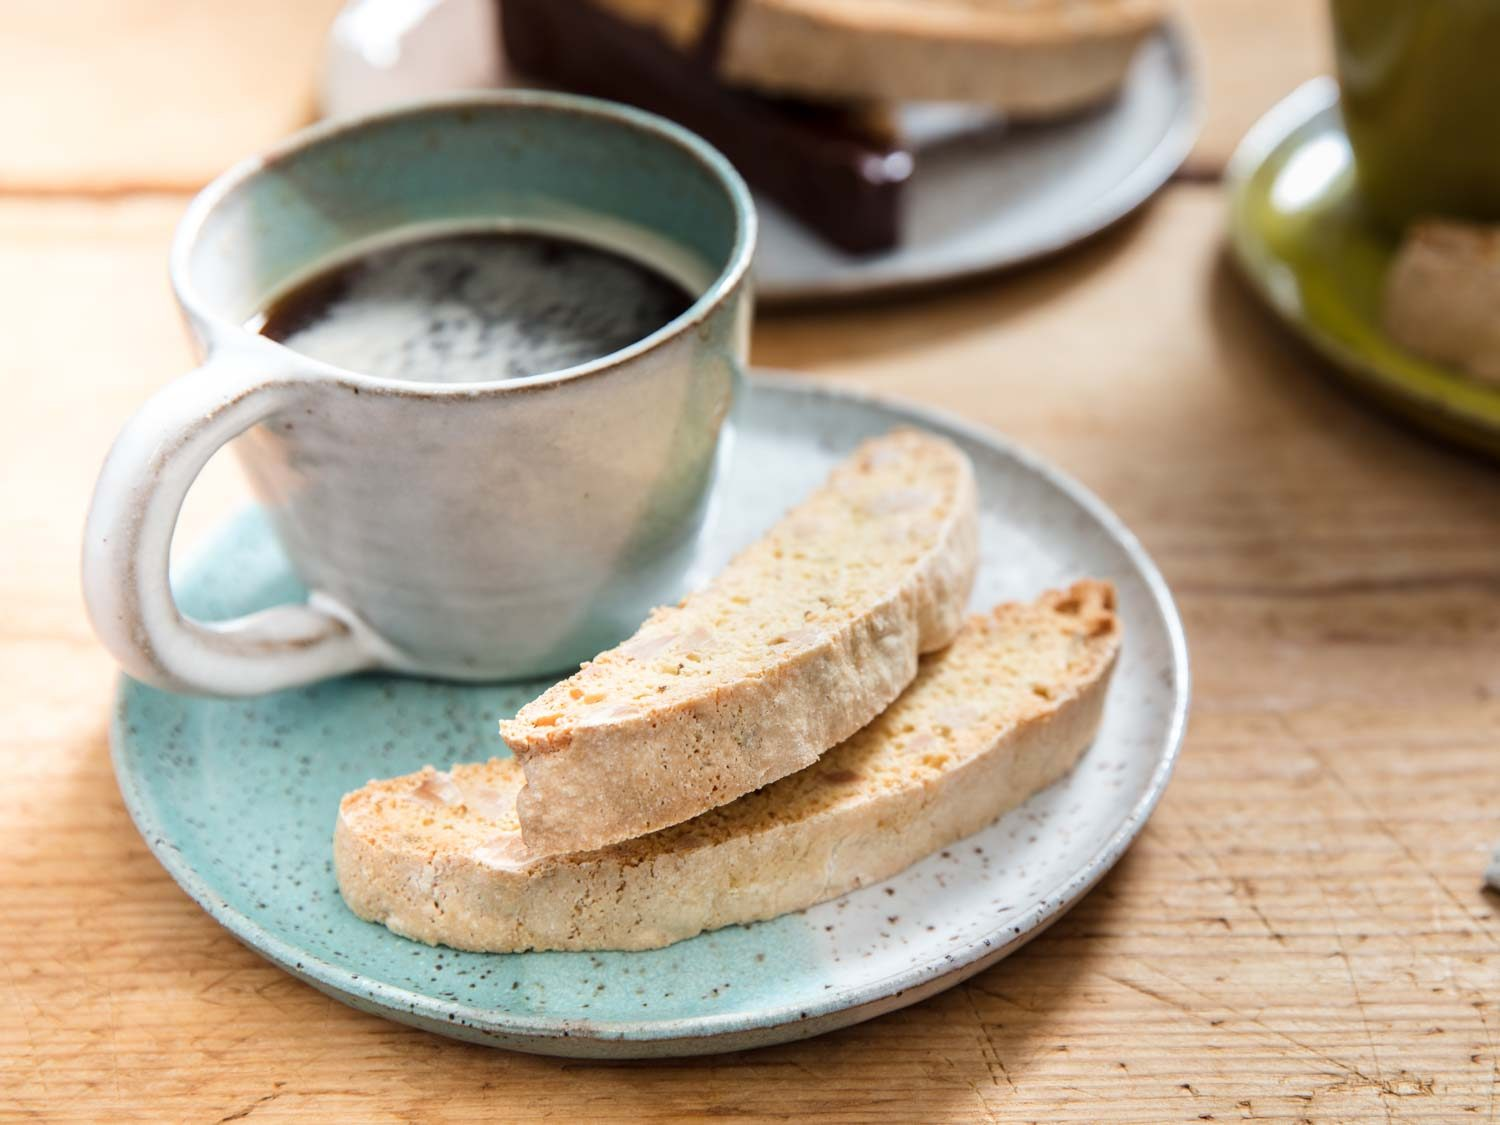 Almond Biscotti With Anise